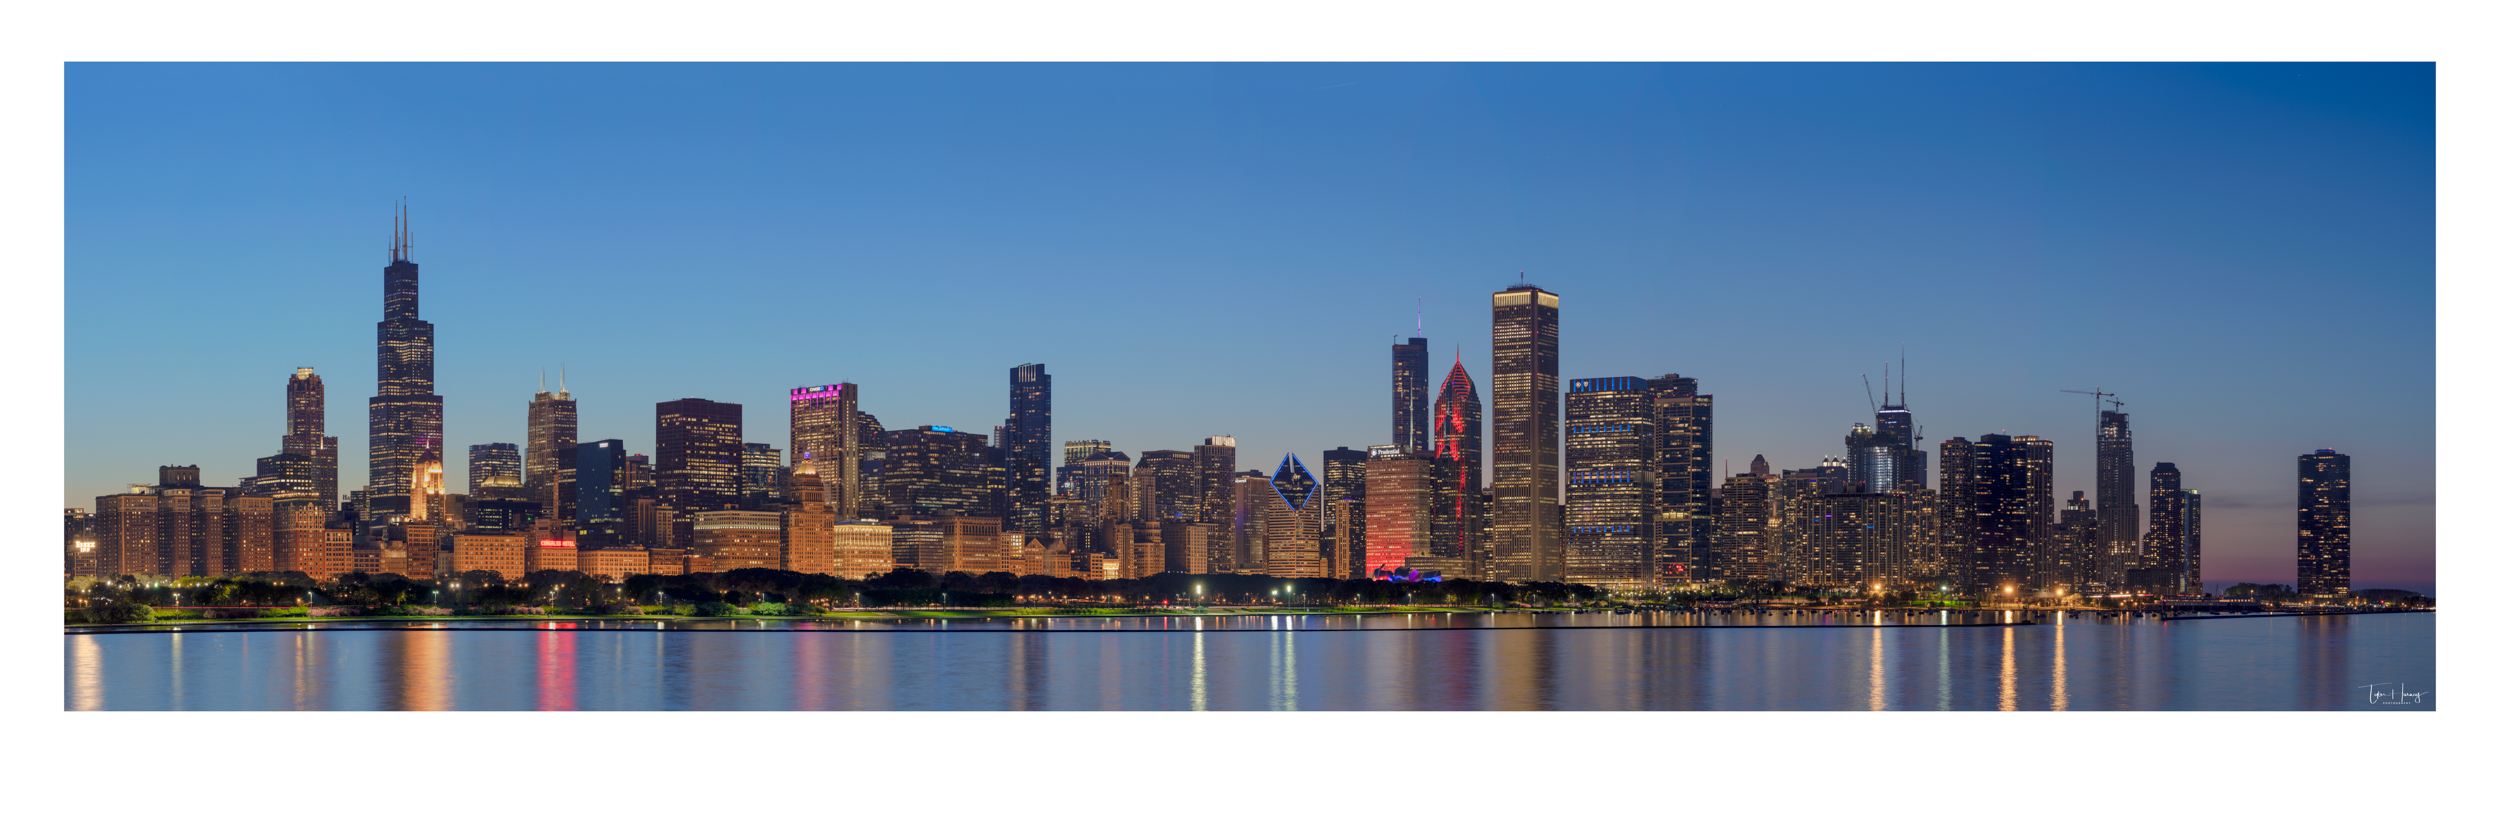 Chicago Skyline Sunset Panorama 5-23-2018.jpg